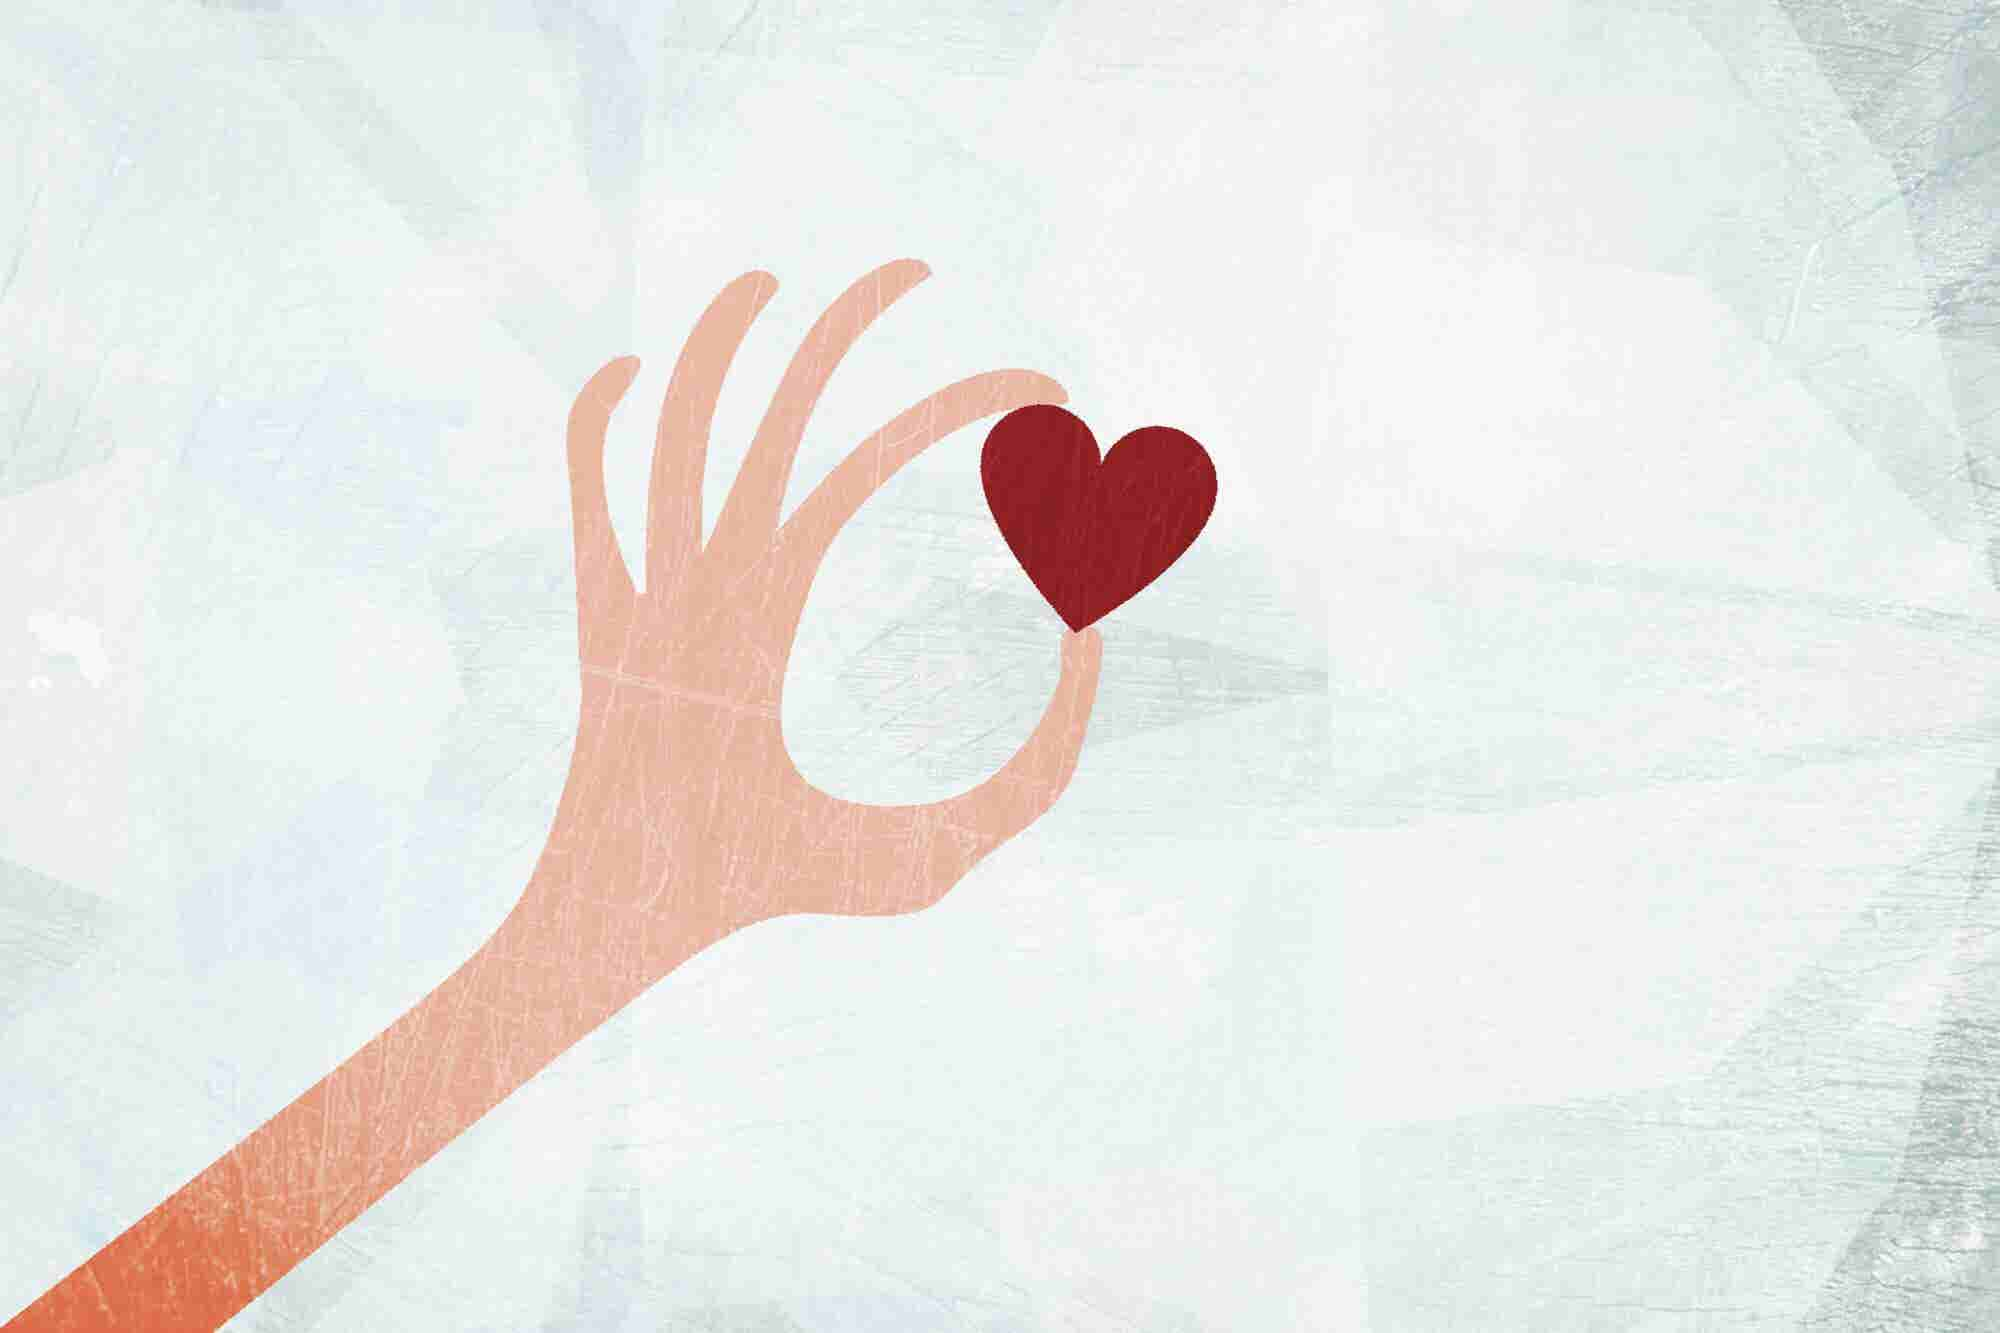 Are Entrepreneurs Doomed When it Comes to Finding Love?